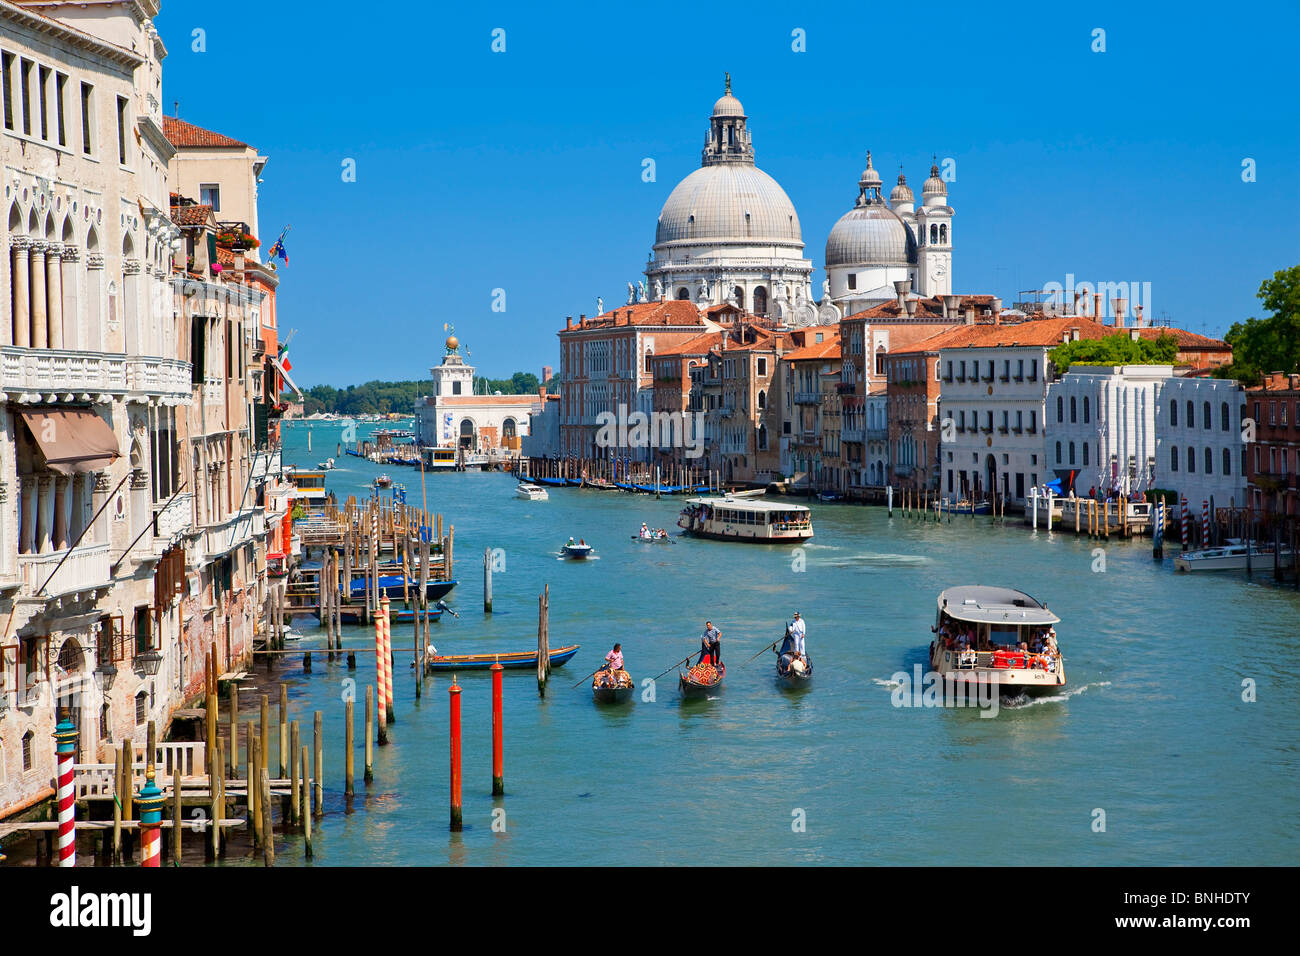 Europe, Italy, Venezia, Venice, Listed as World Heritage by UNESCO, Grand Canal and Santa Maria della Salute - Stock Image